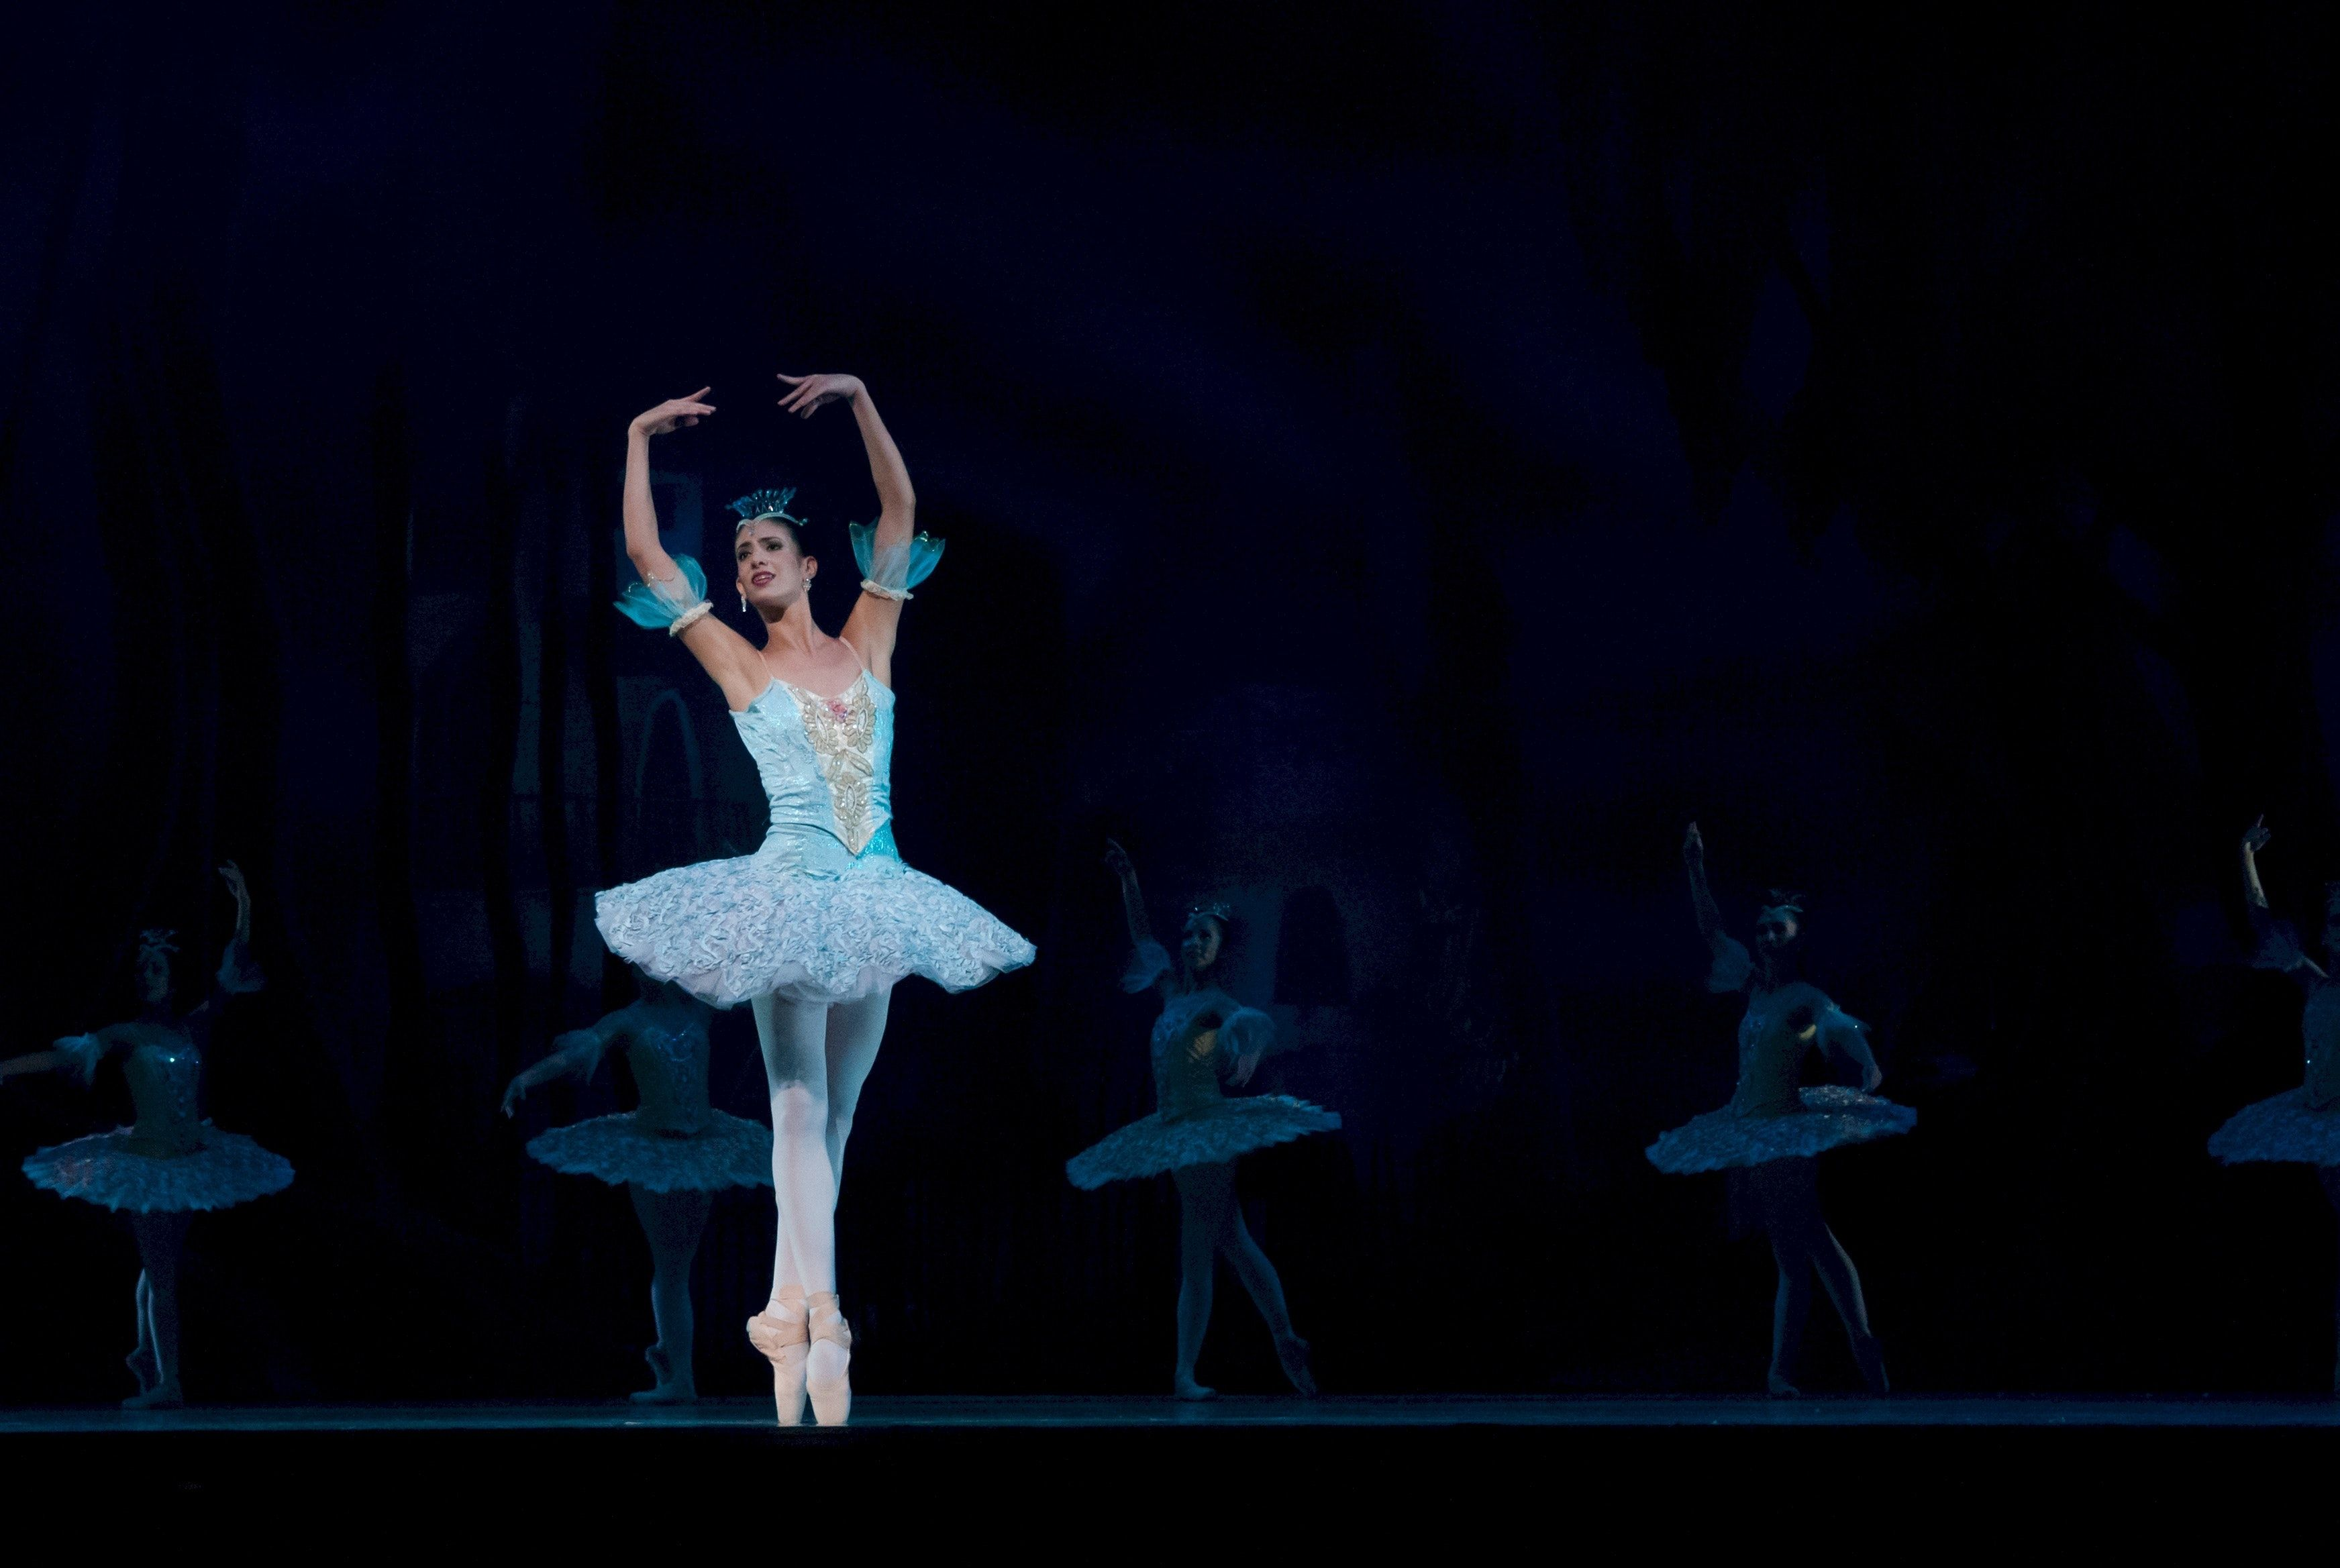 Image may contain: Performer, Ballet, Ballerina, Leisure Activities, Dance Pose, Dance, Person, People, Human